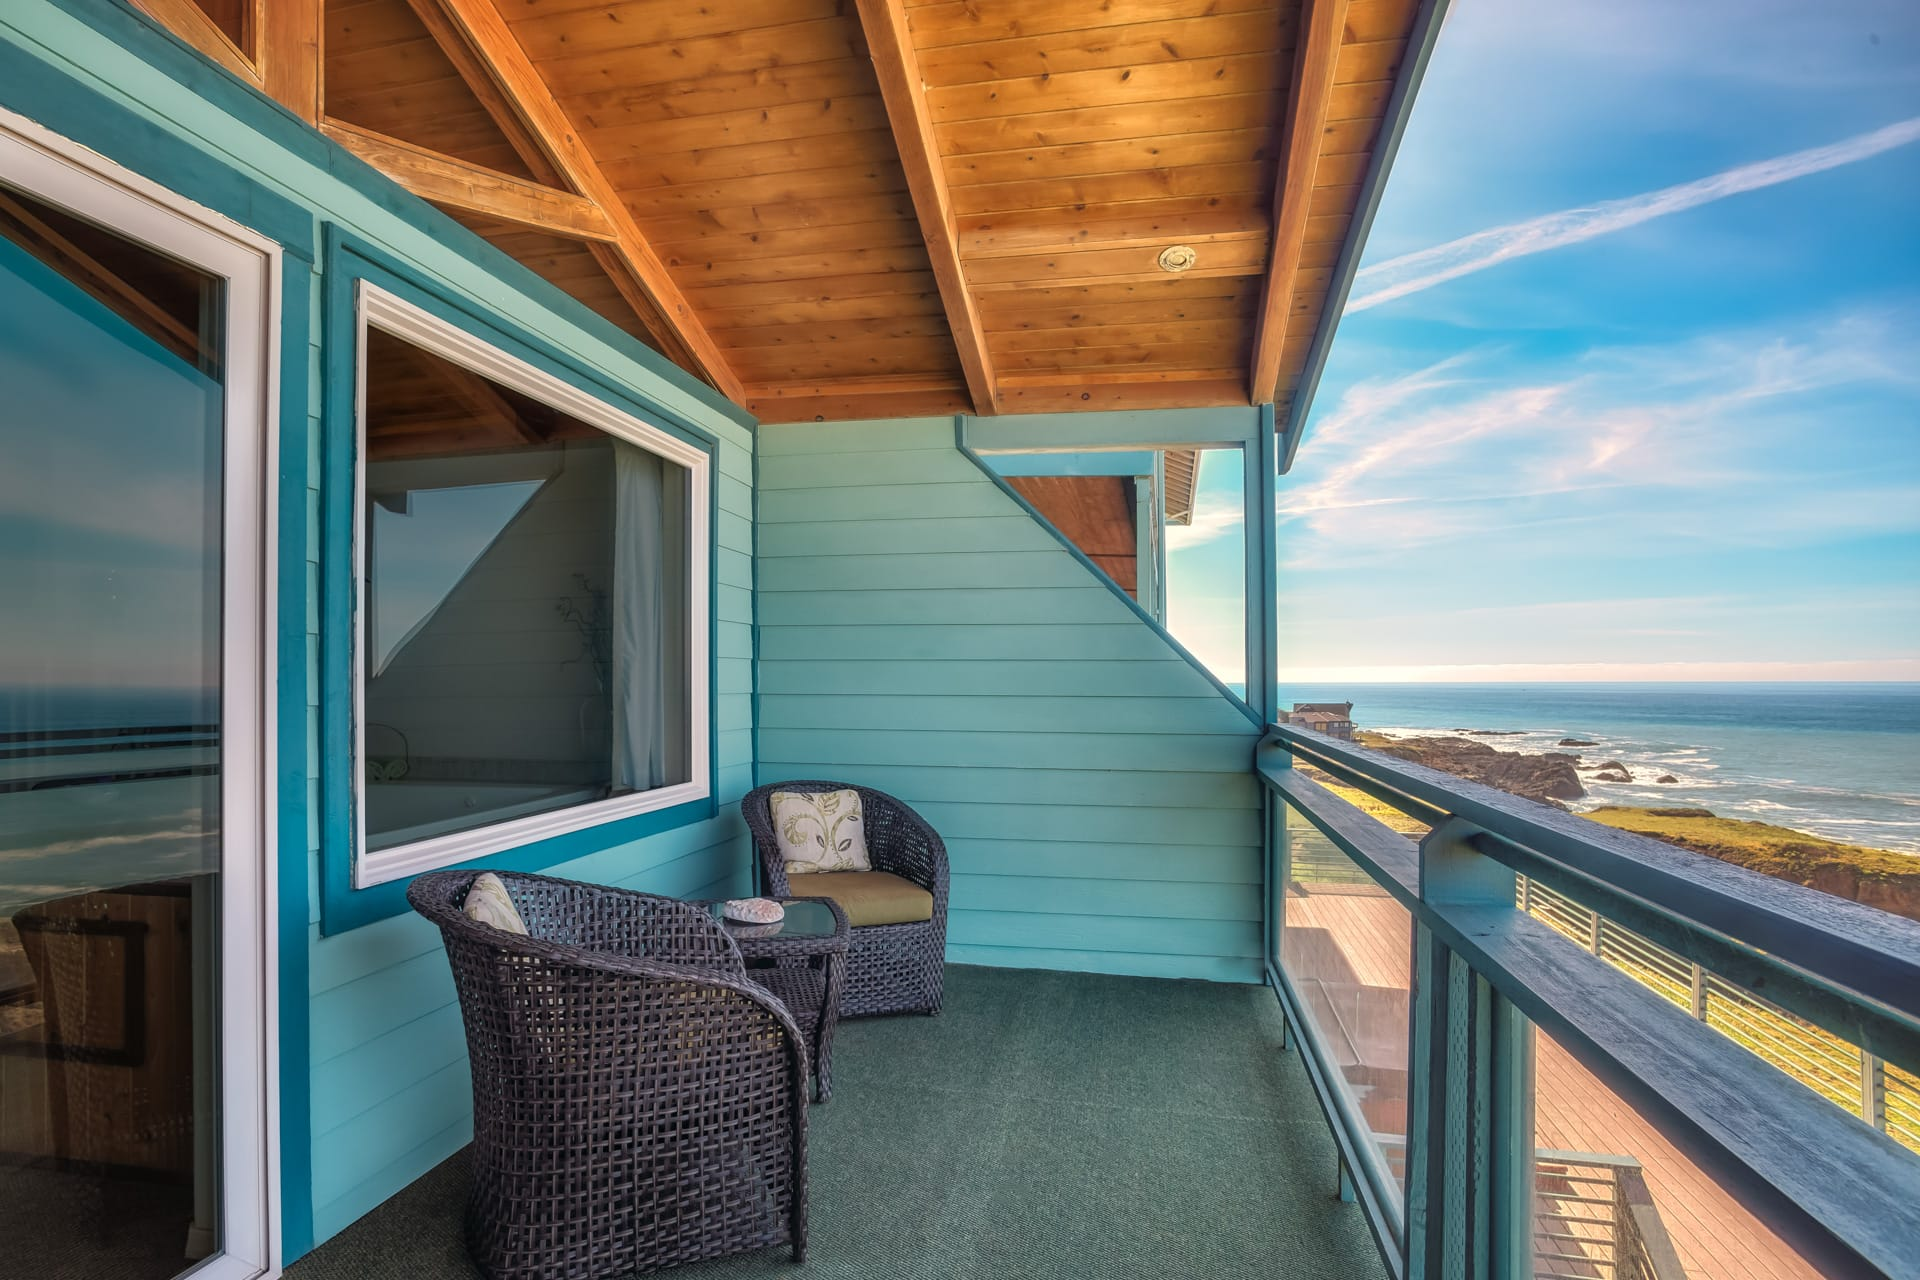 Panoramic View Of Northern California Lost Coast From Deluxe Spa Suite Oceanfront Hotel Room Furnished Private